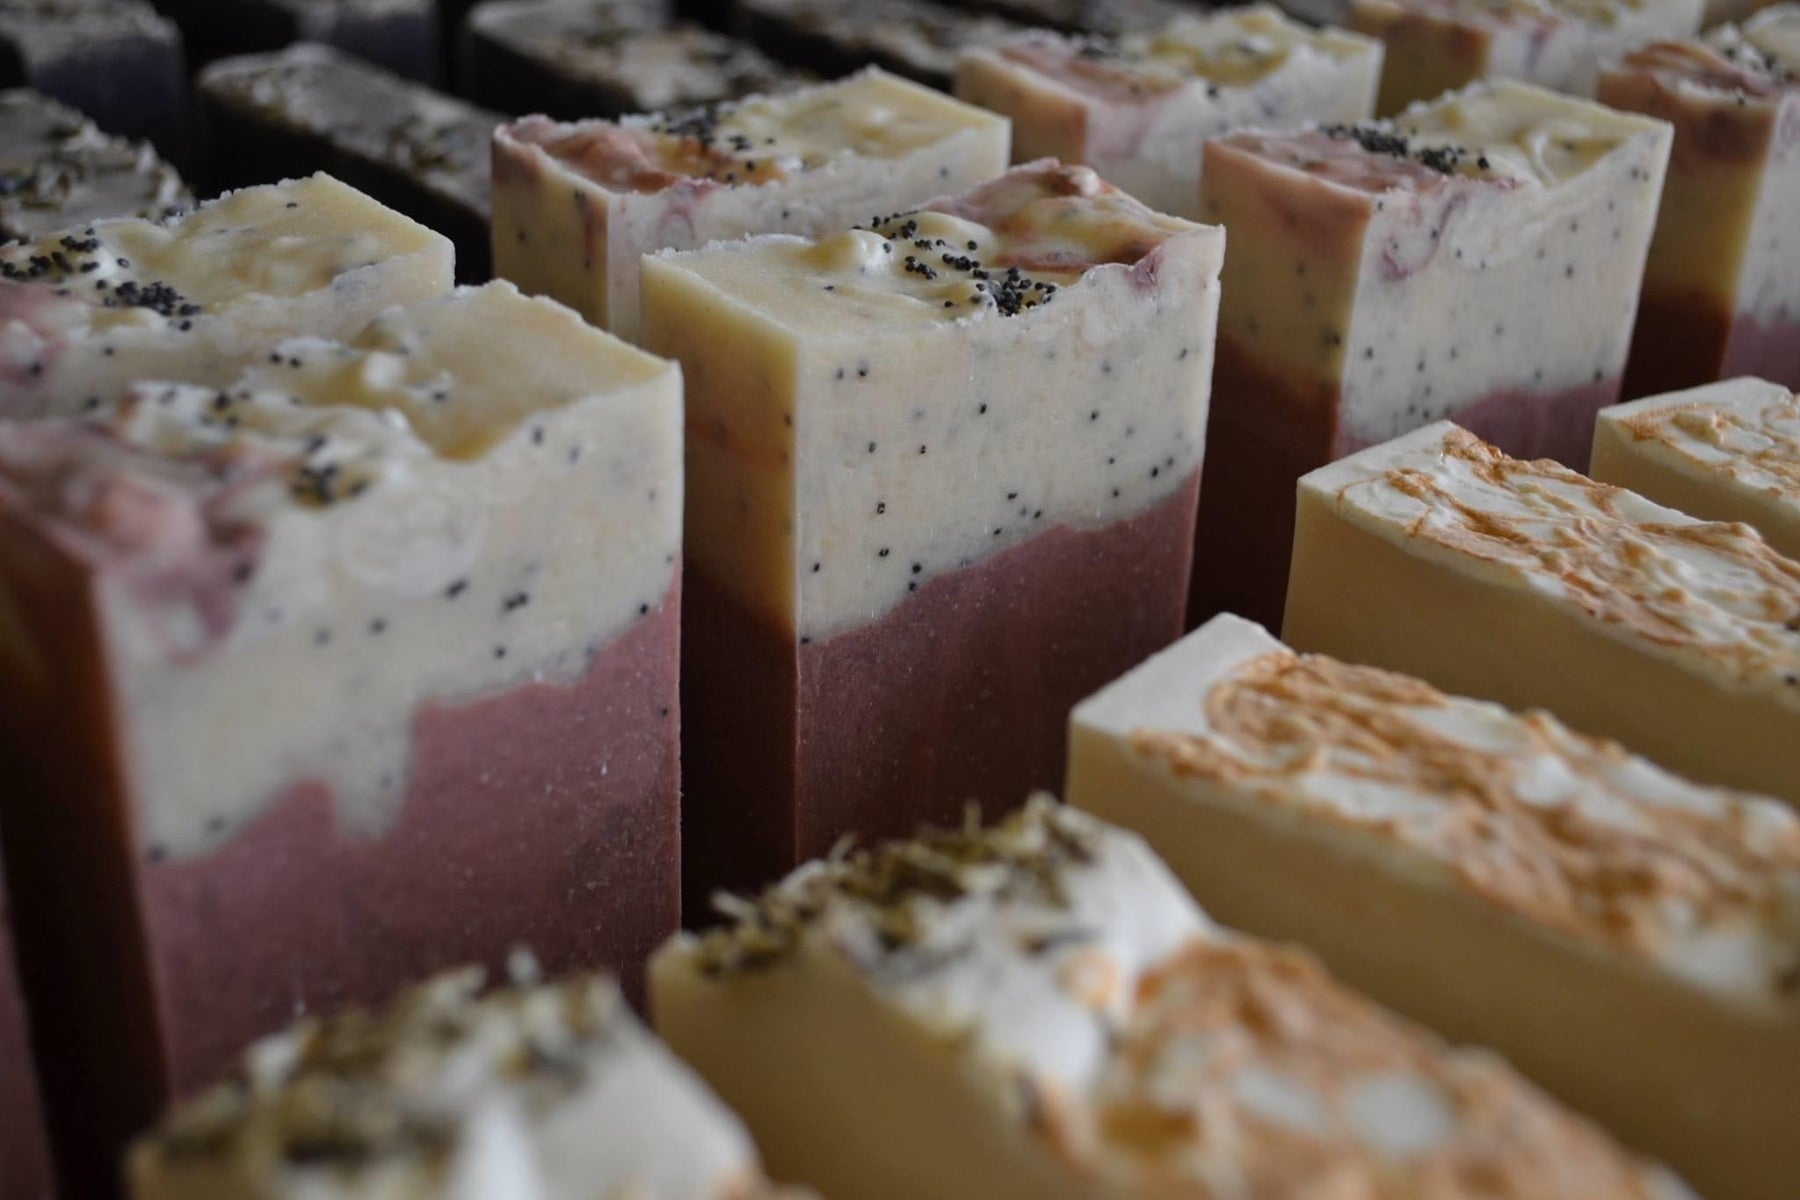 An image of a collection of hand crafted soaps